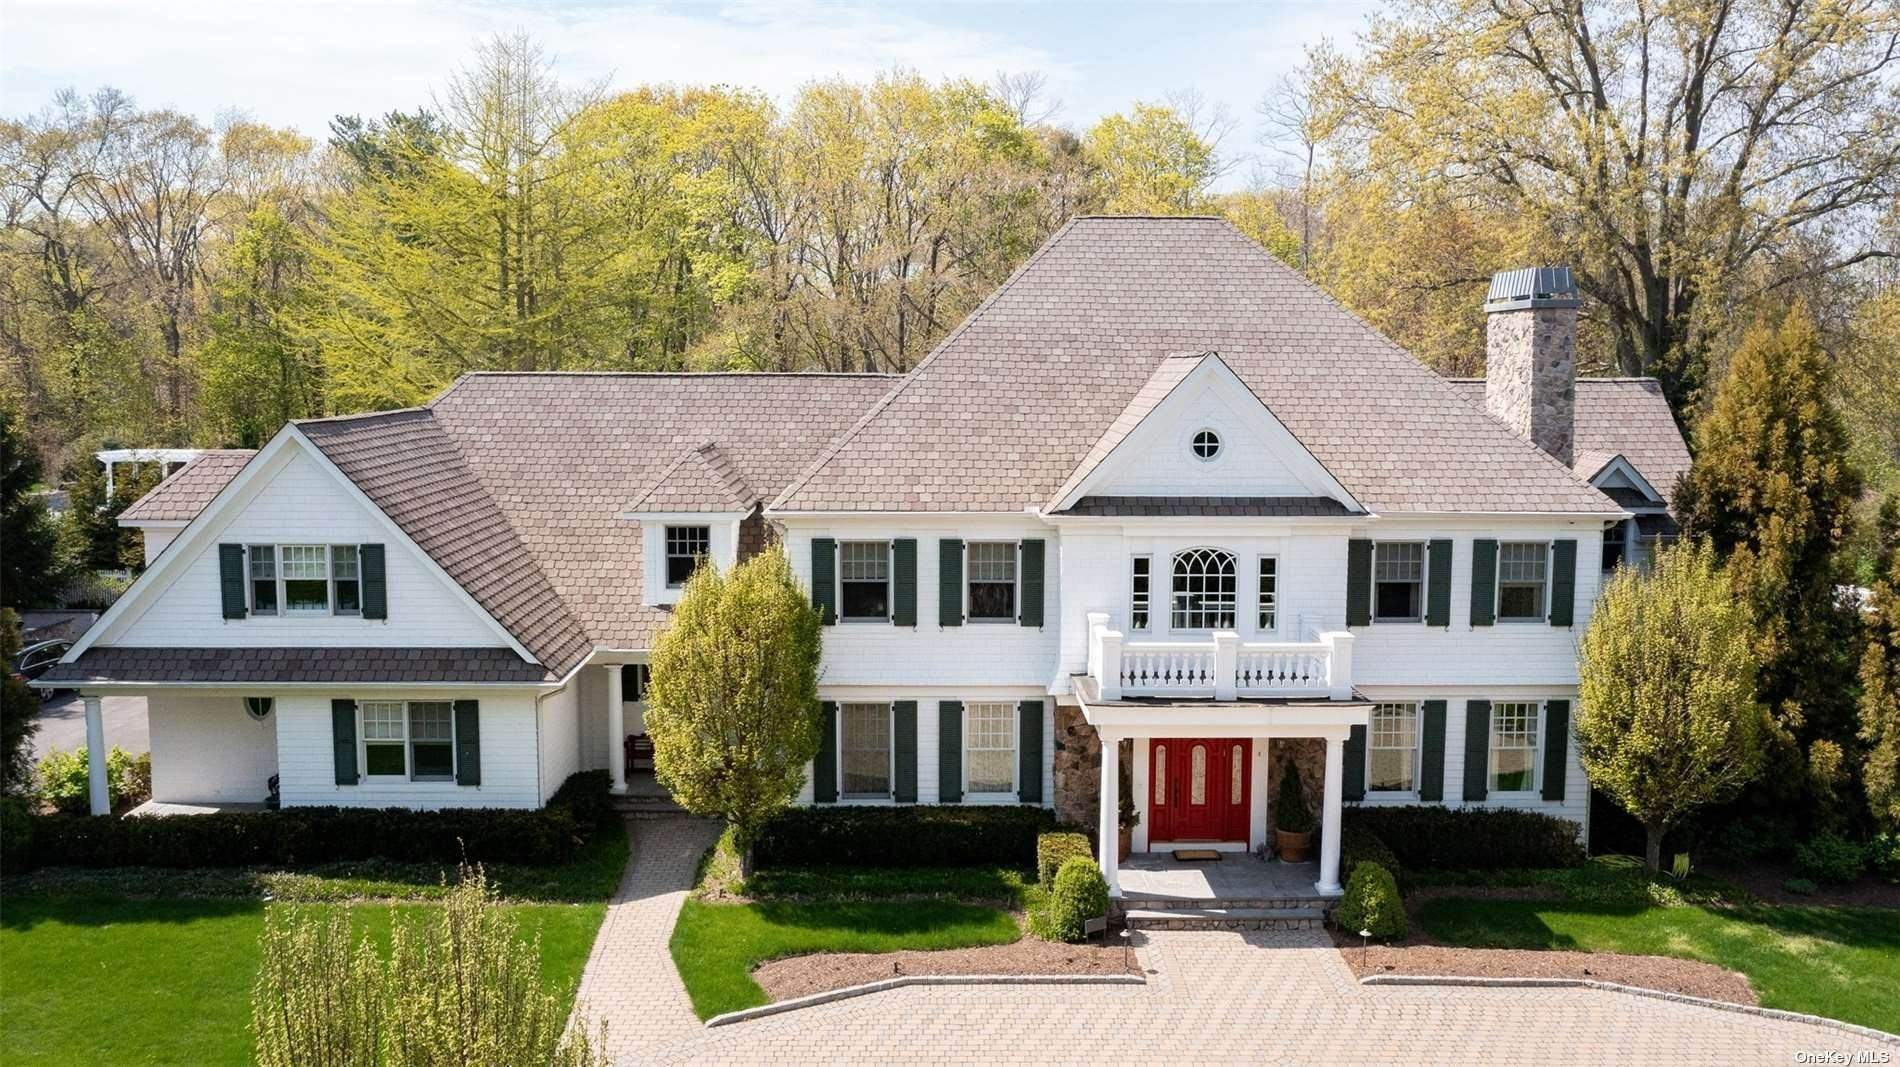 Residential for Sale at 5 Middle Hollow Road Lloyd Harbor, New York 11743 United States